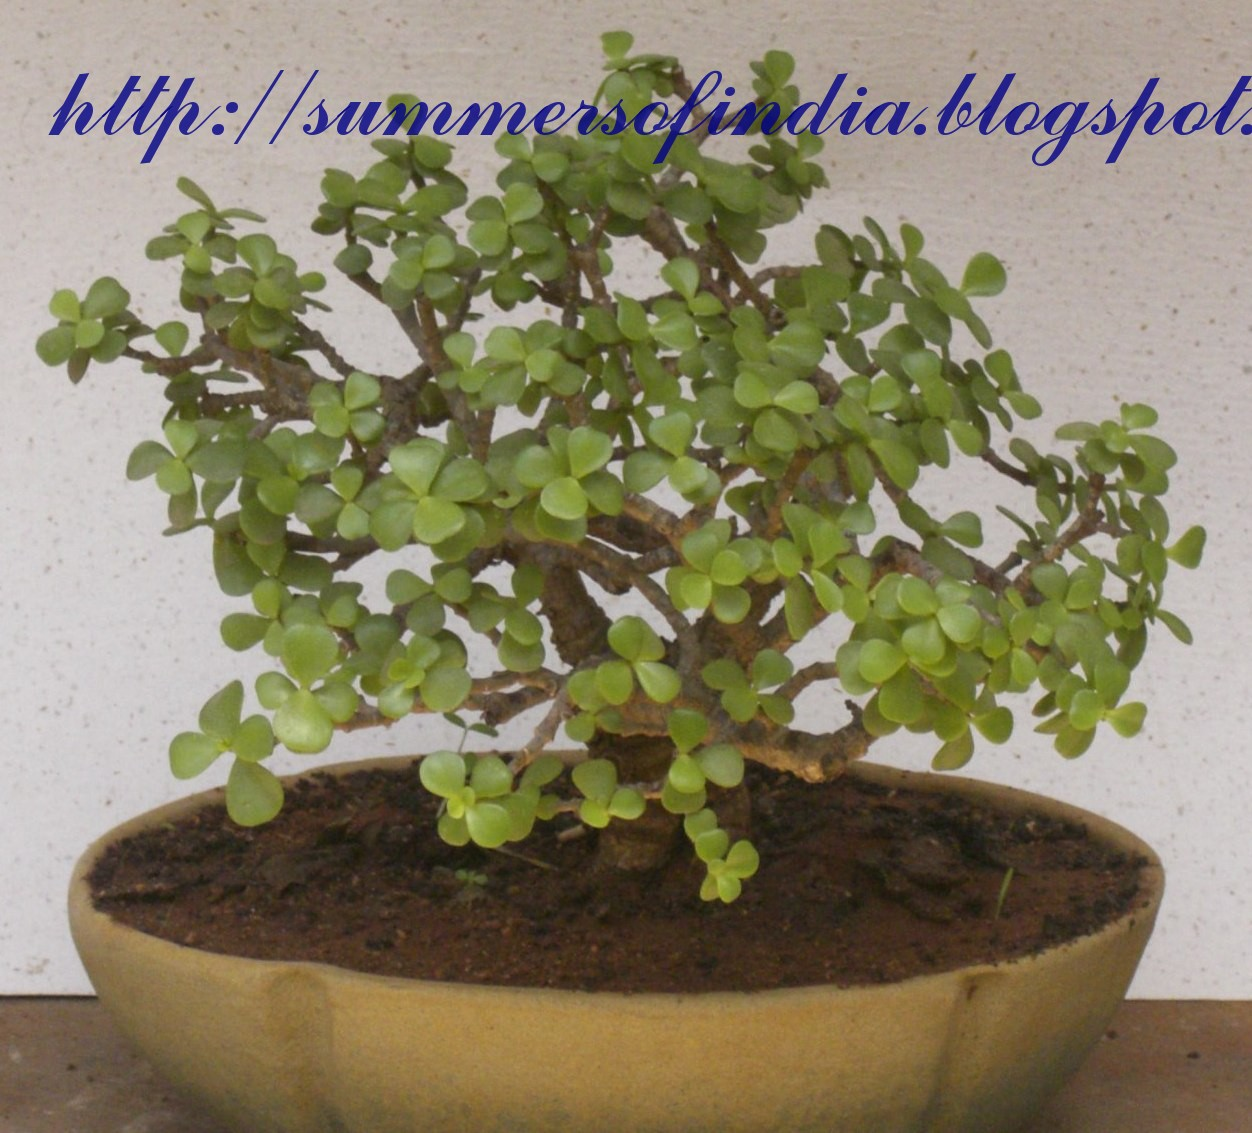 SummersofIndia Jade Bonsai